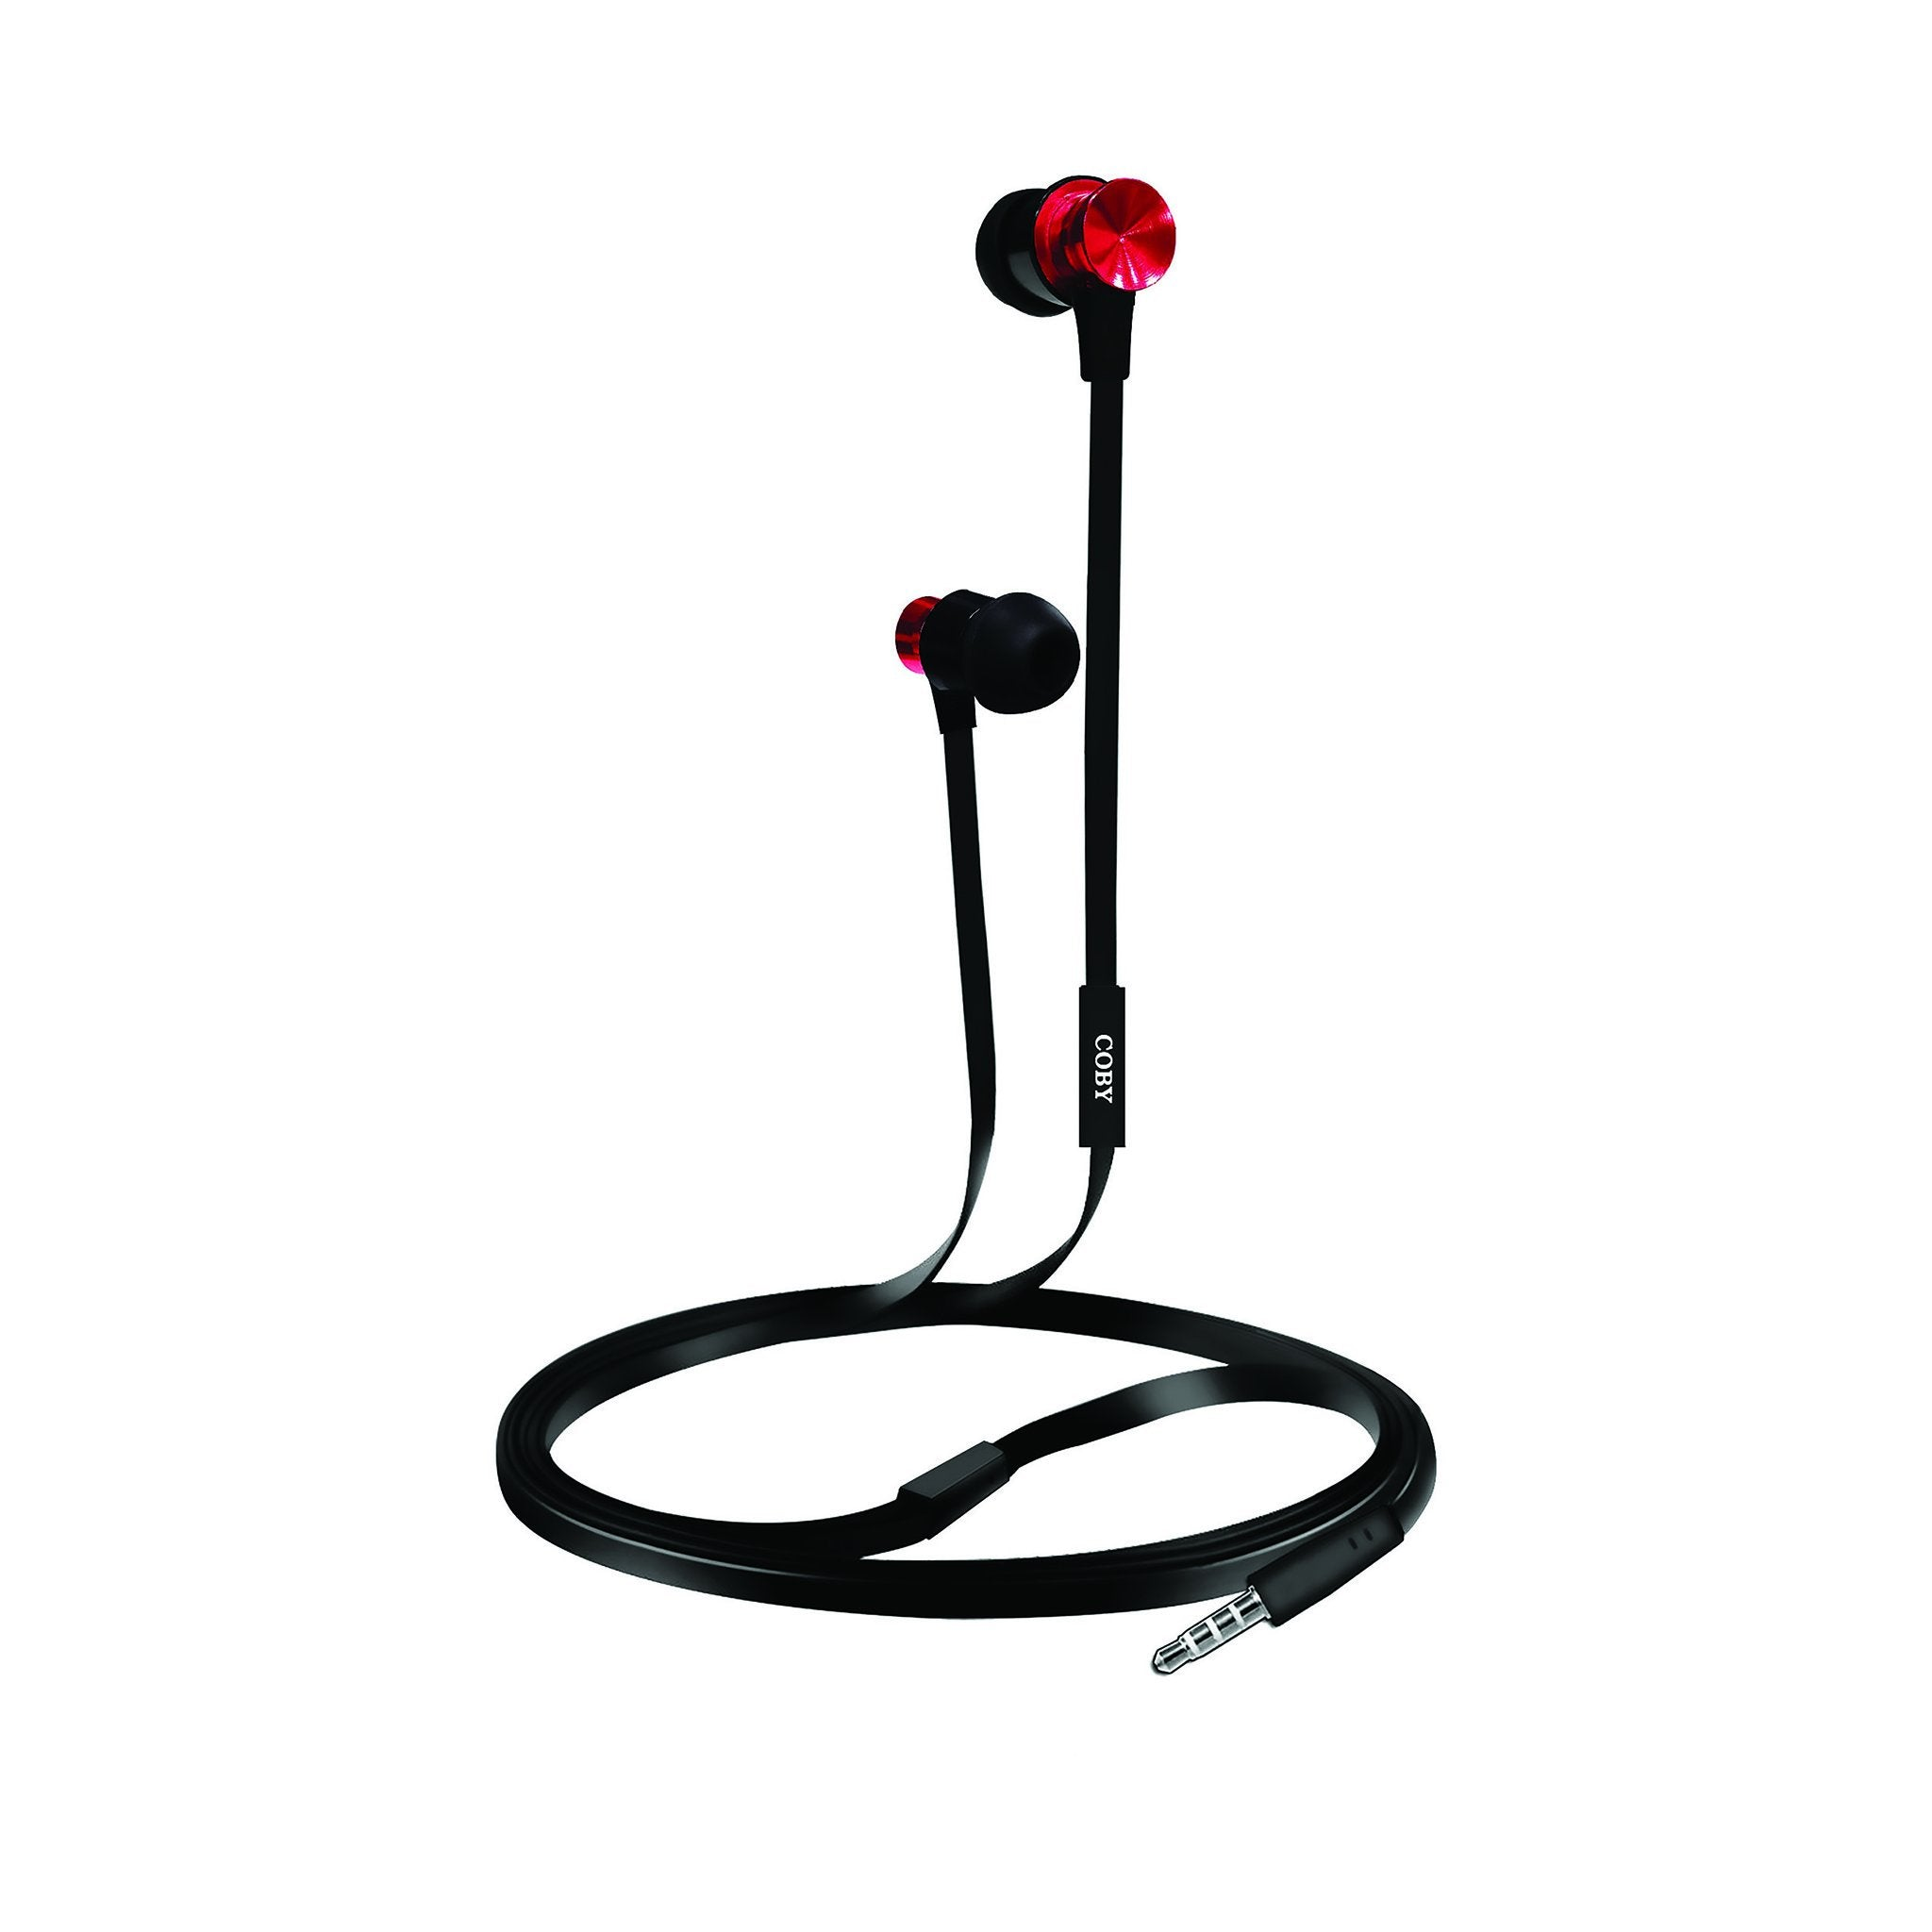 Velocity Stereo Earbuds